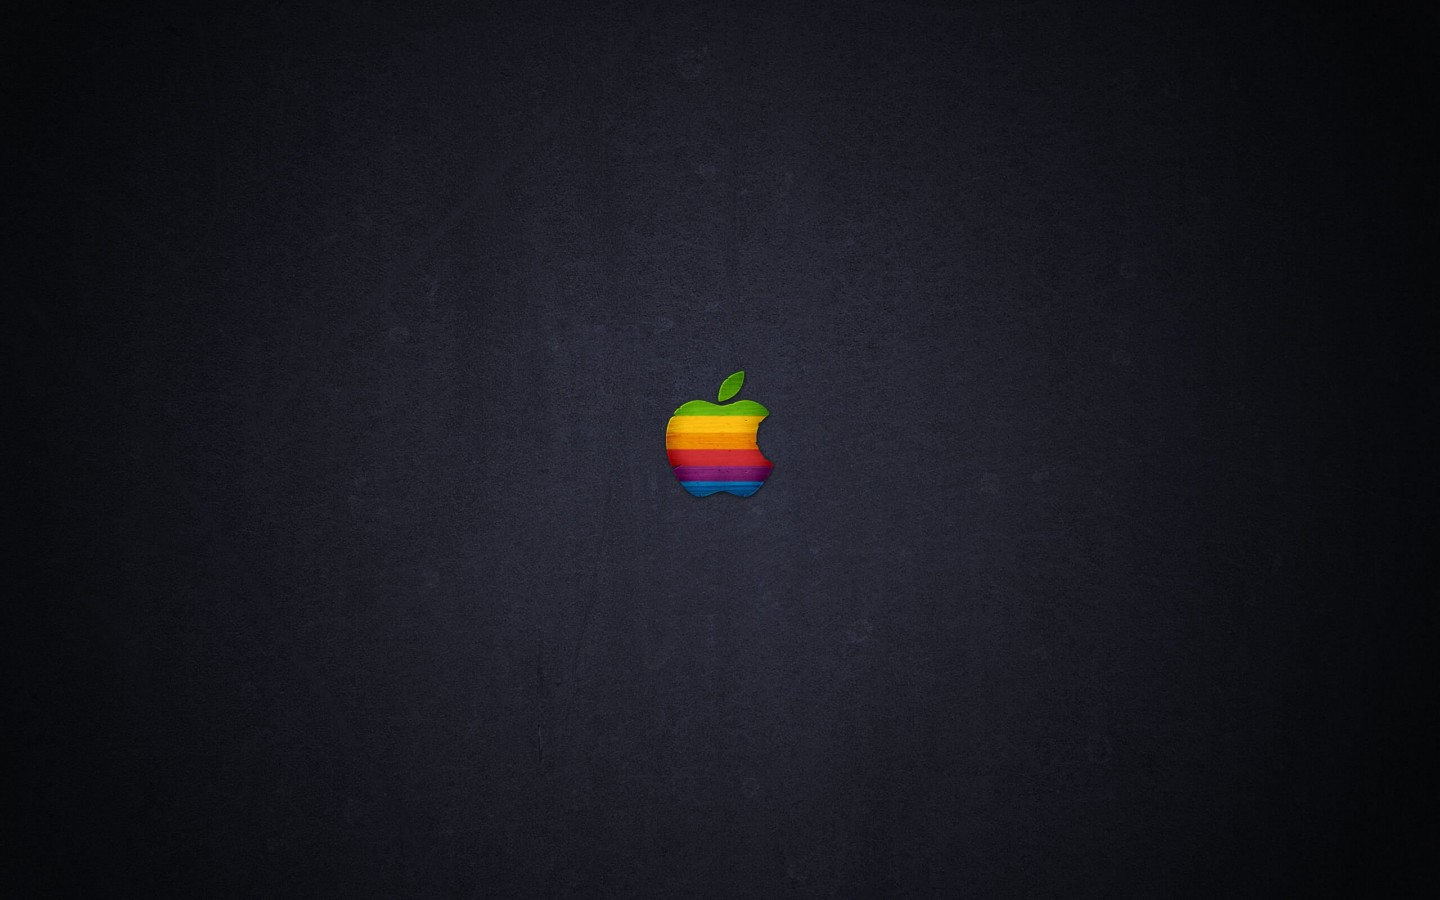 Wood Retro Apple Wallpaper for Desktop 1440x900